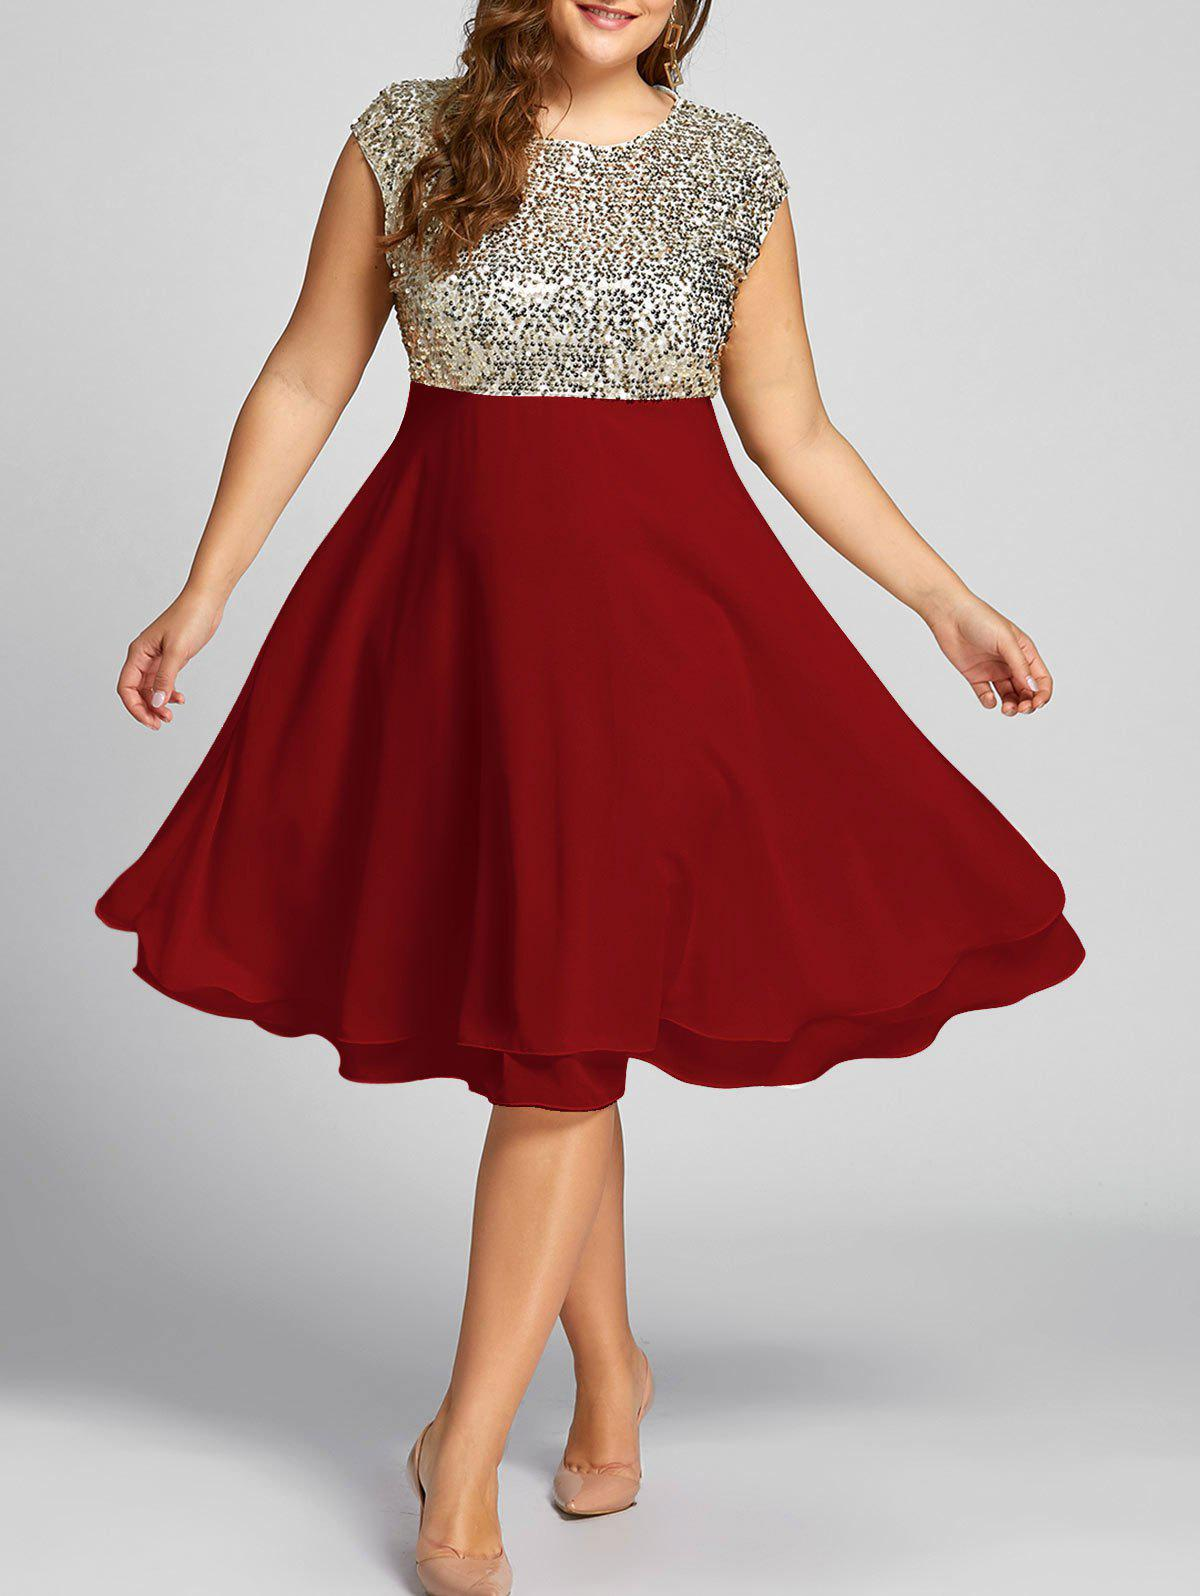 Plus Size Sequin Sparkly Cocktail Dress